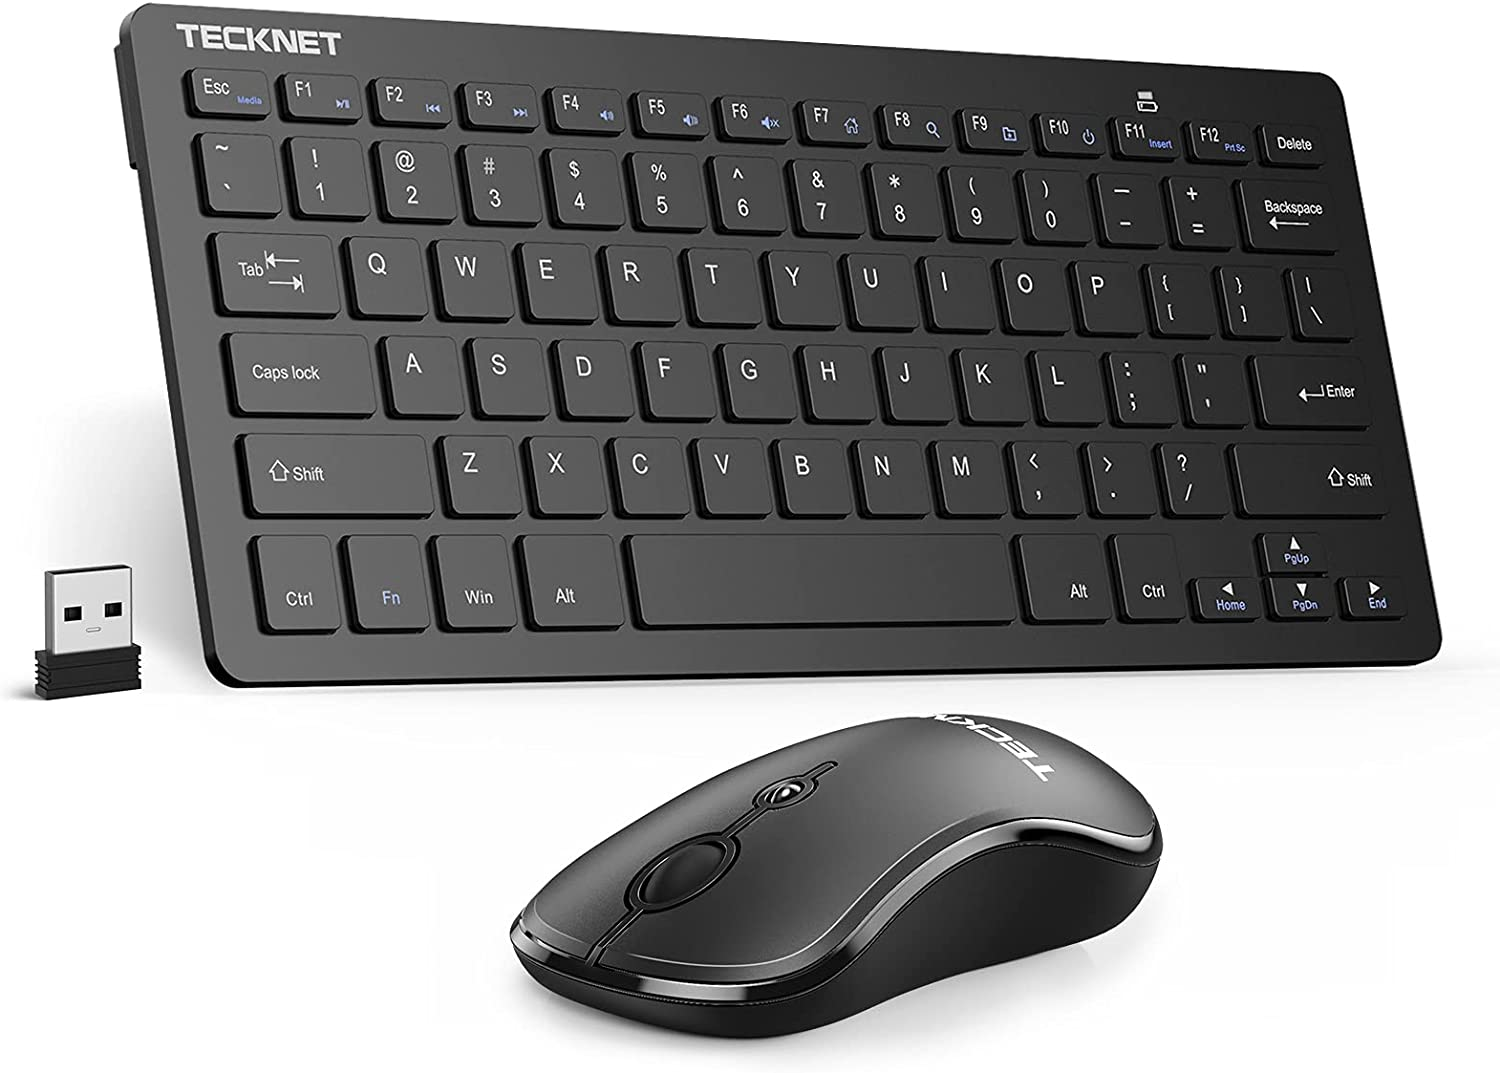 Wireless Keyboard and Mouse Combo TECKNET 2.4GHz Ultra-Thin Portable Compact Small Keyboards & 3 Level DPI Wireless Mouse for PC, Desktop, Notebook, Laptop, Windows XP / Vista / 7 / 8 / 10, Mac